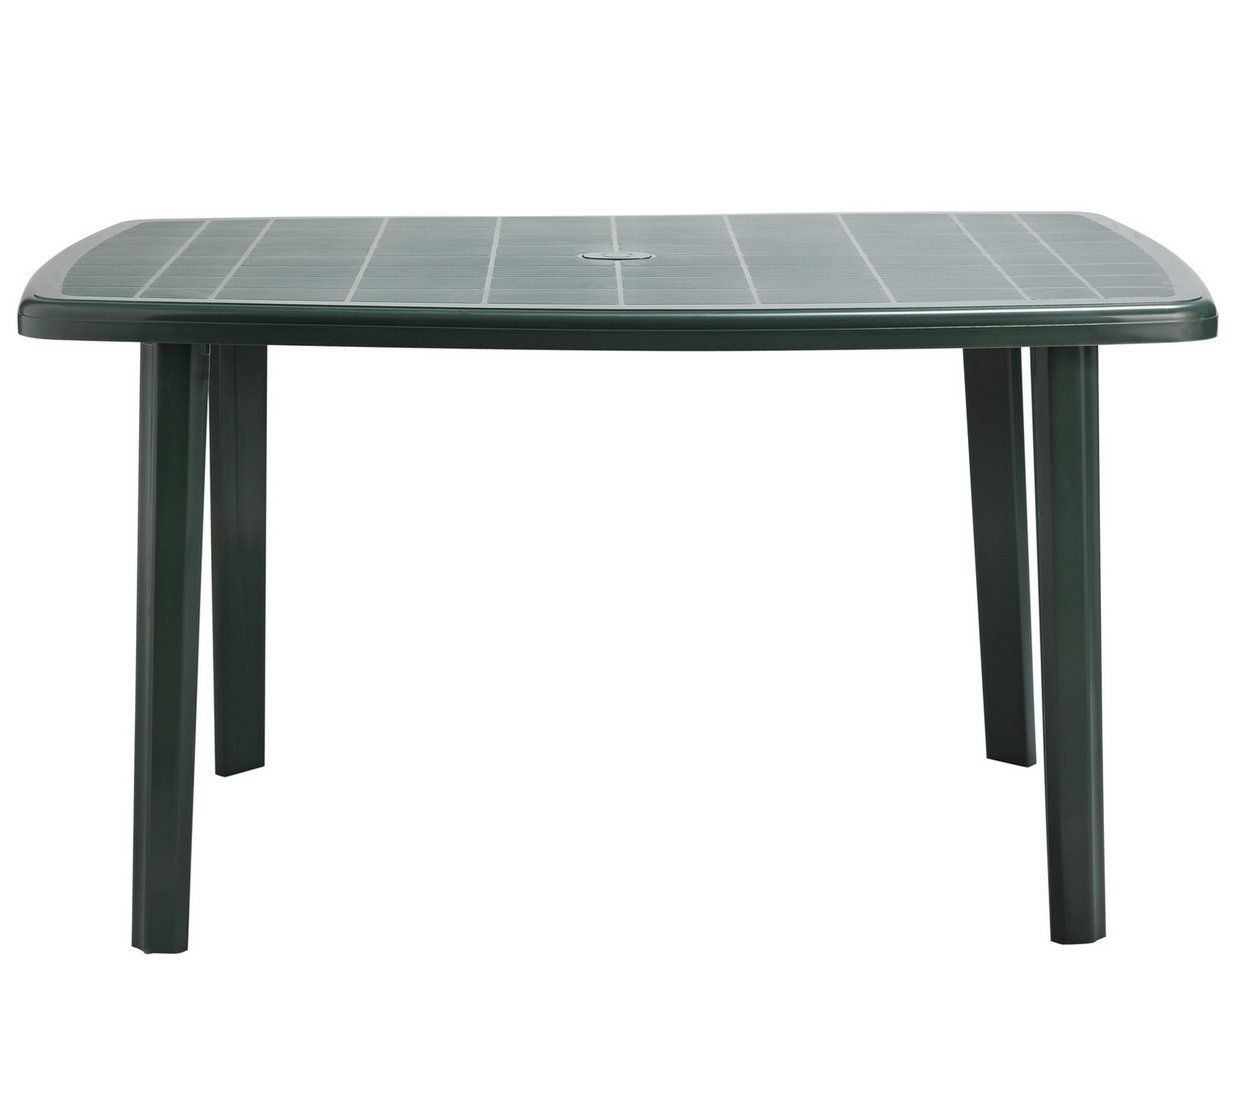 Argos Round Garden Table And Chairs: Home Rectangular 6 Seater Garden Table - Green